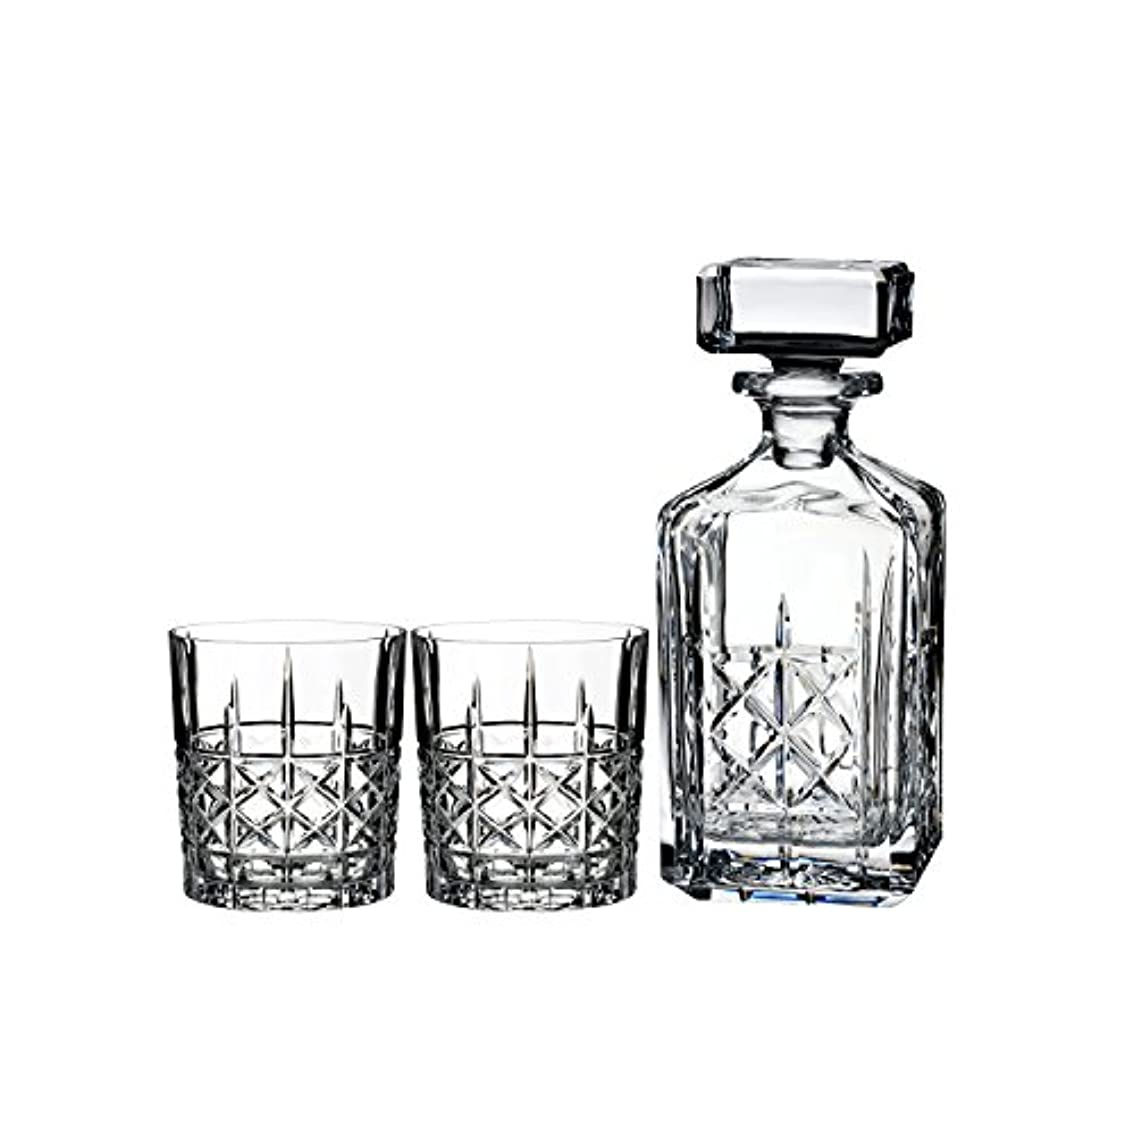 Marquis by Waterford Brady Decanter Set with Two Double Old Fashioned Glasses by Waterford